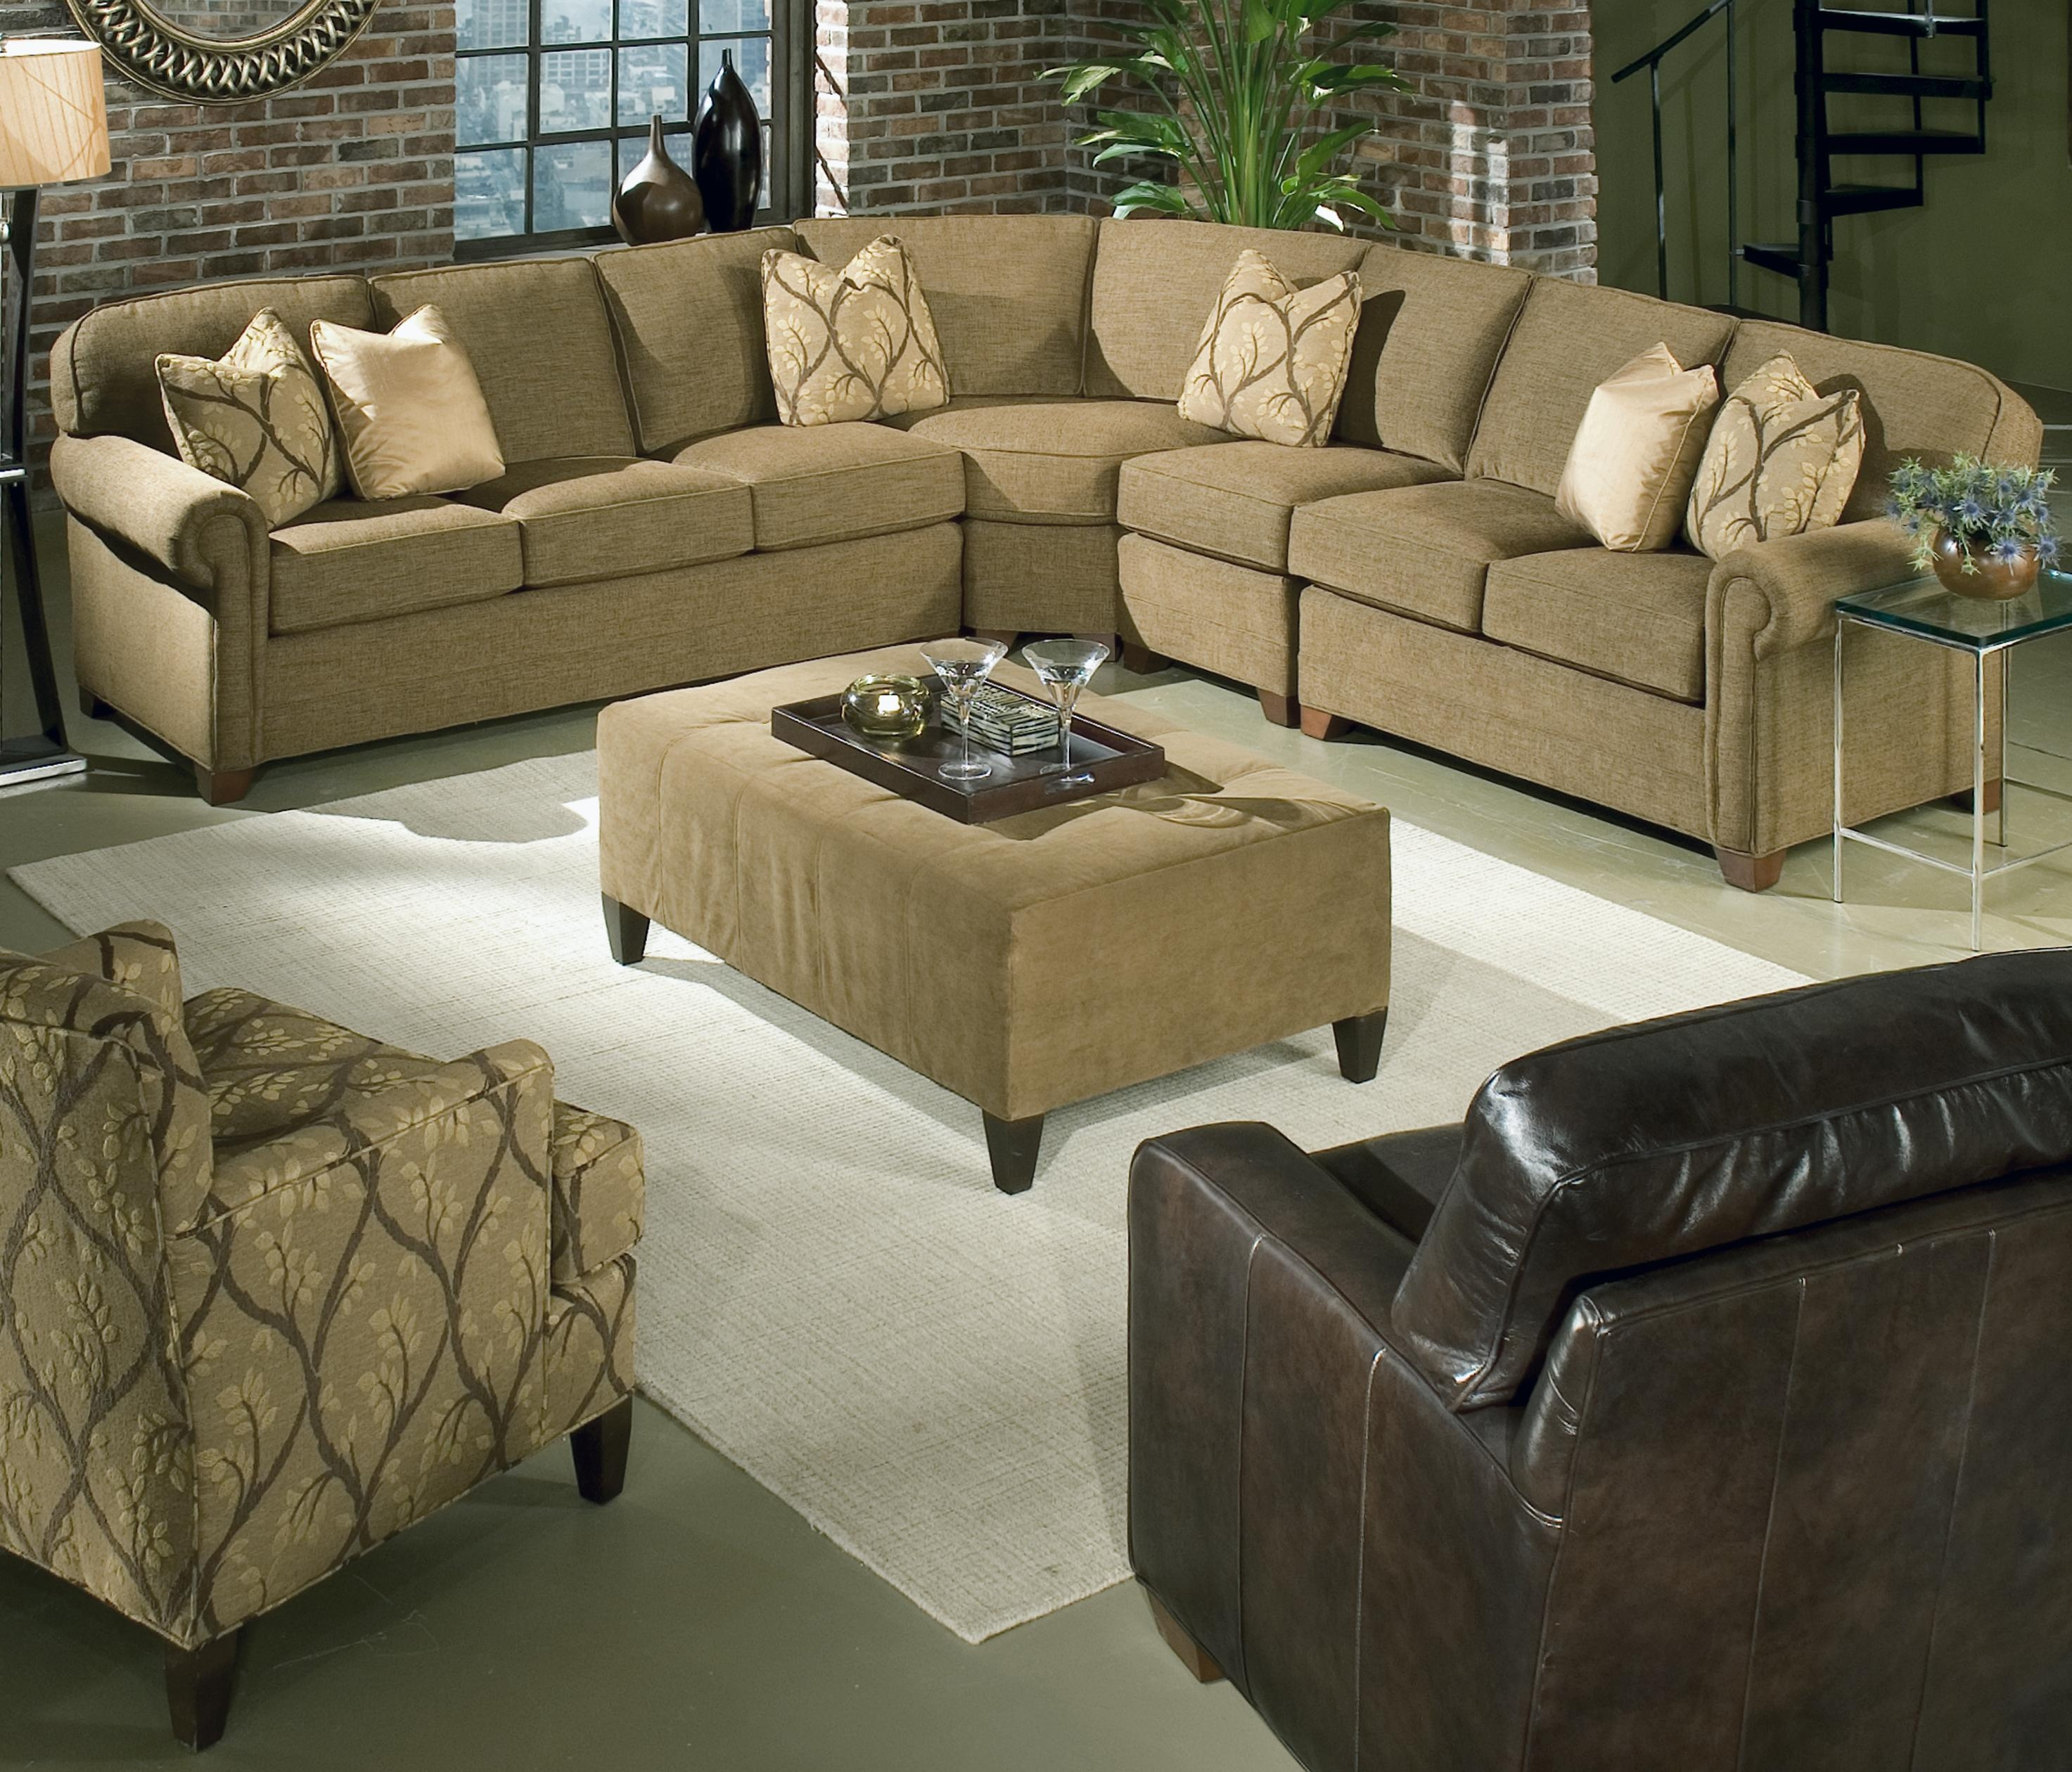 Best Customized Sectional Sofa 83 About Remodel Media Room With Regard To Media Room Sectional (Photo 9 of 20)